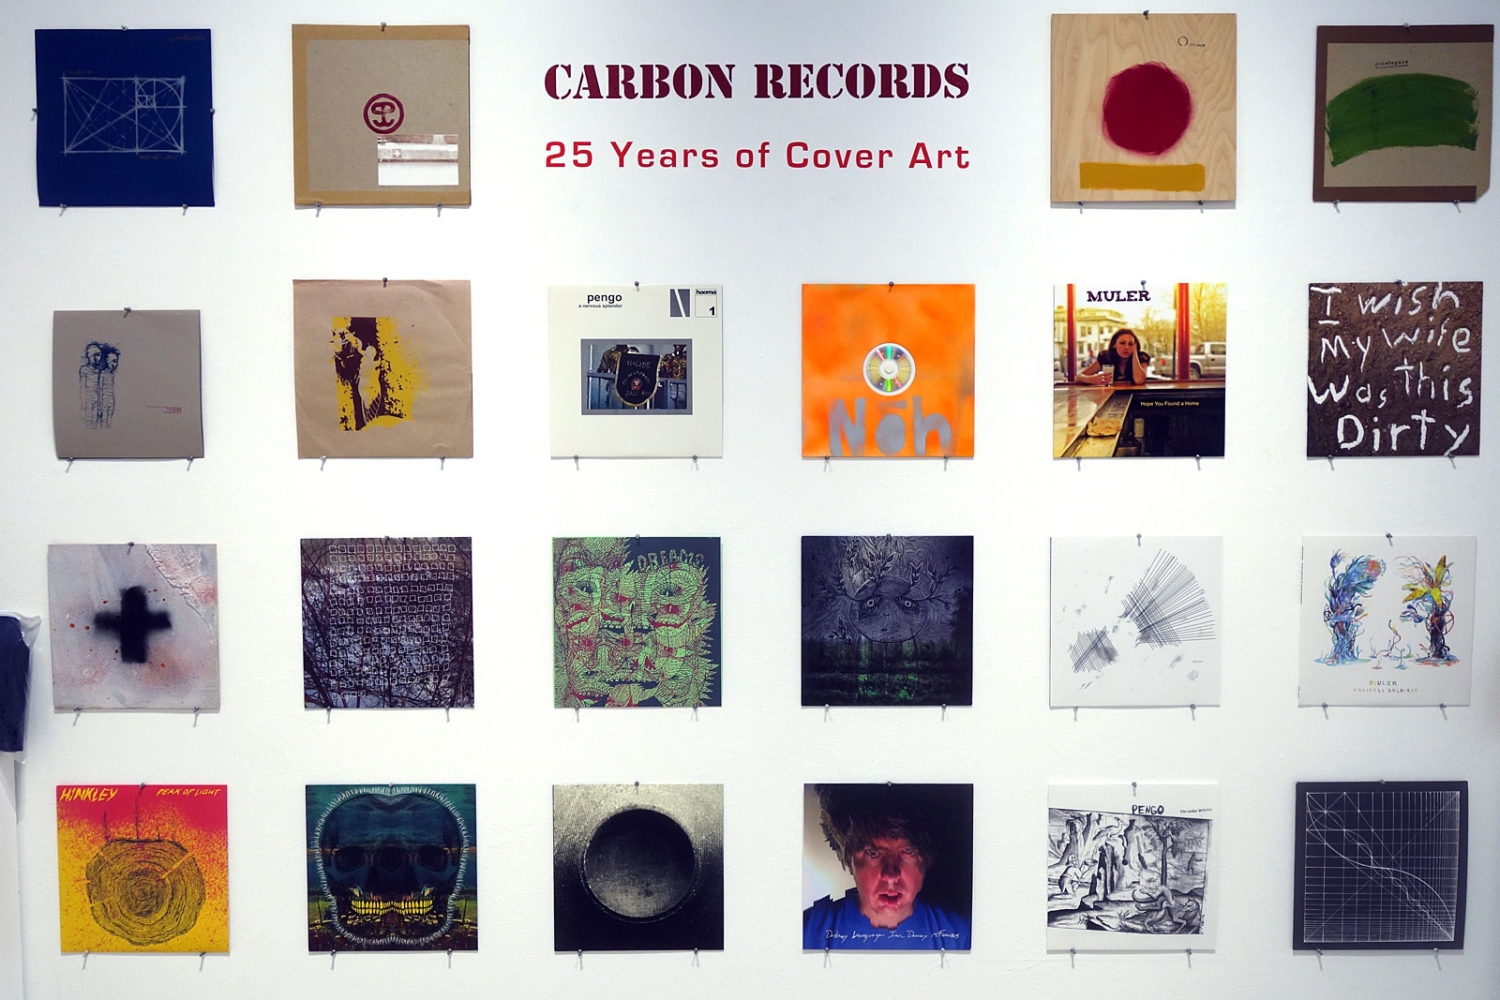 Joe Tunis artwork in Carbon Records: 25 Years of Cover Art at Rochester Contemporary in Rochester, New York